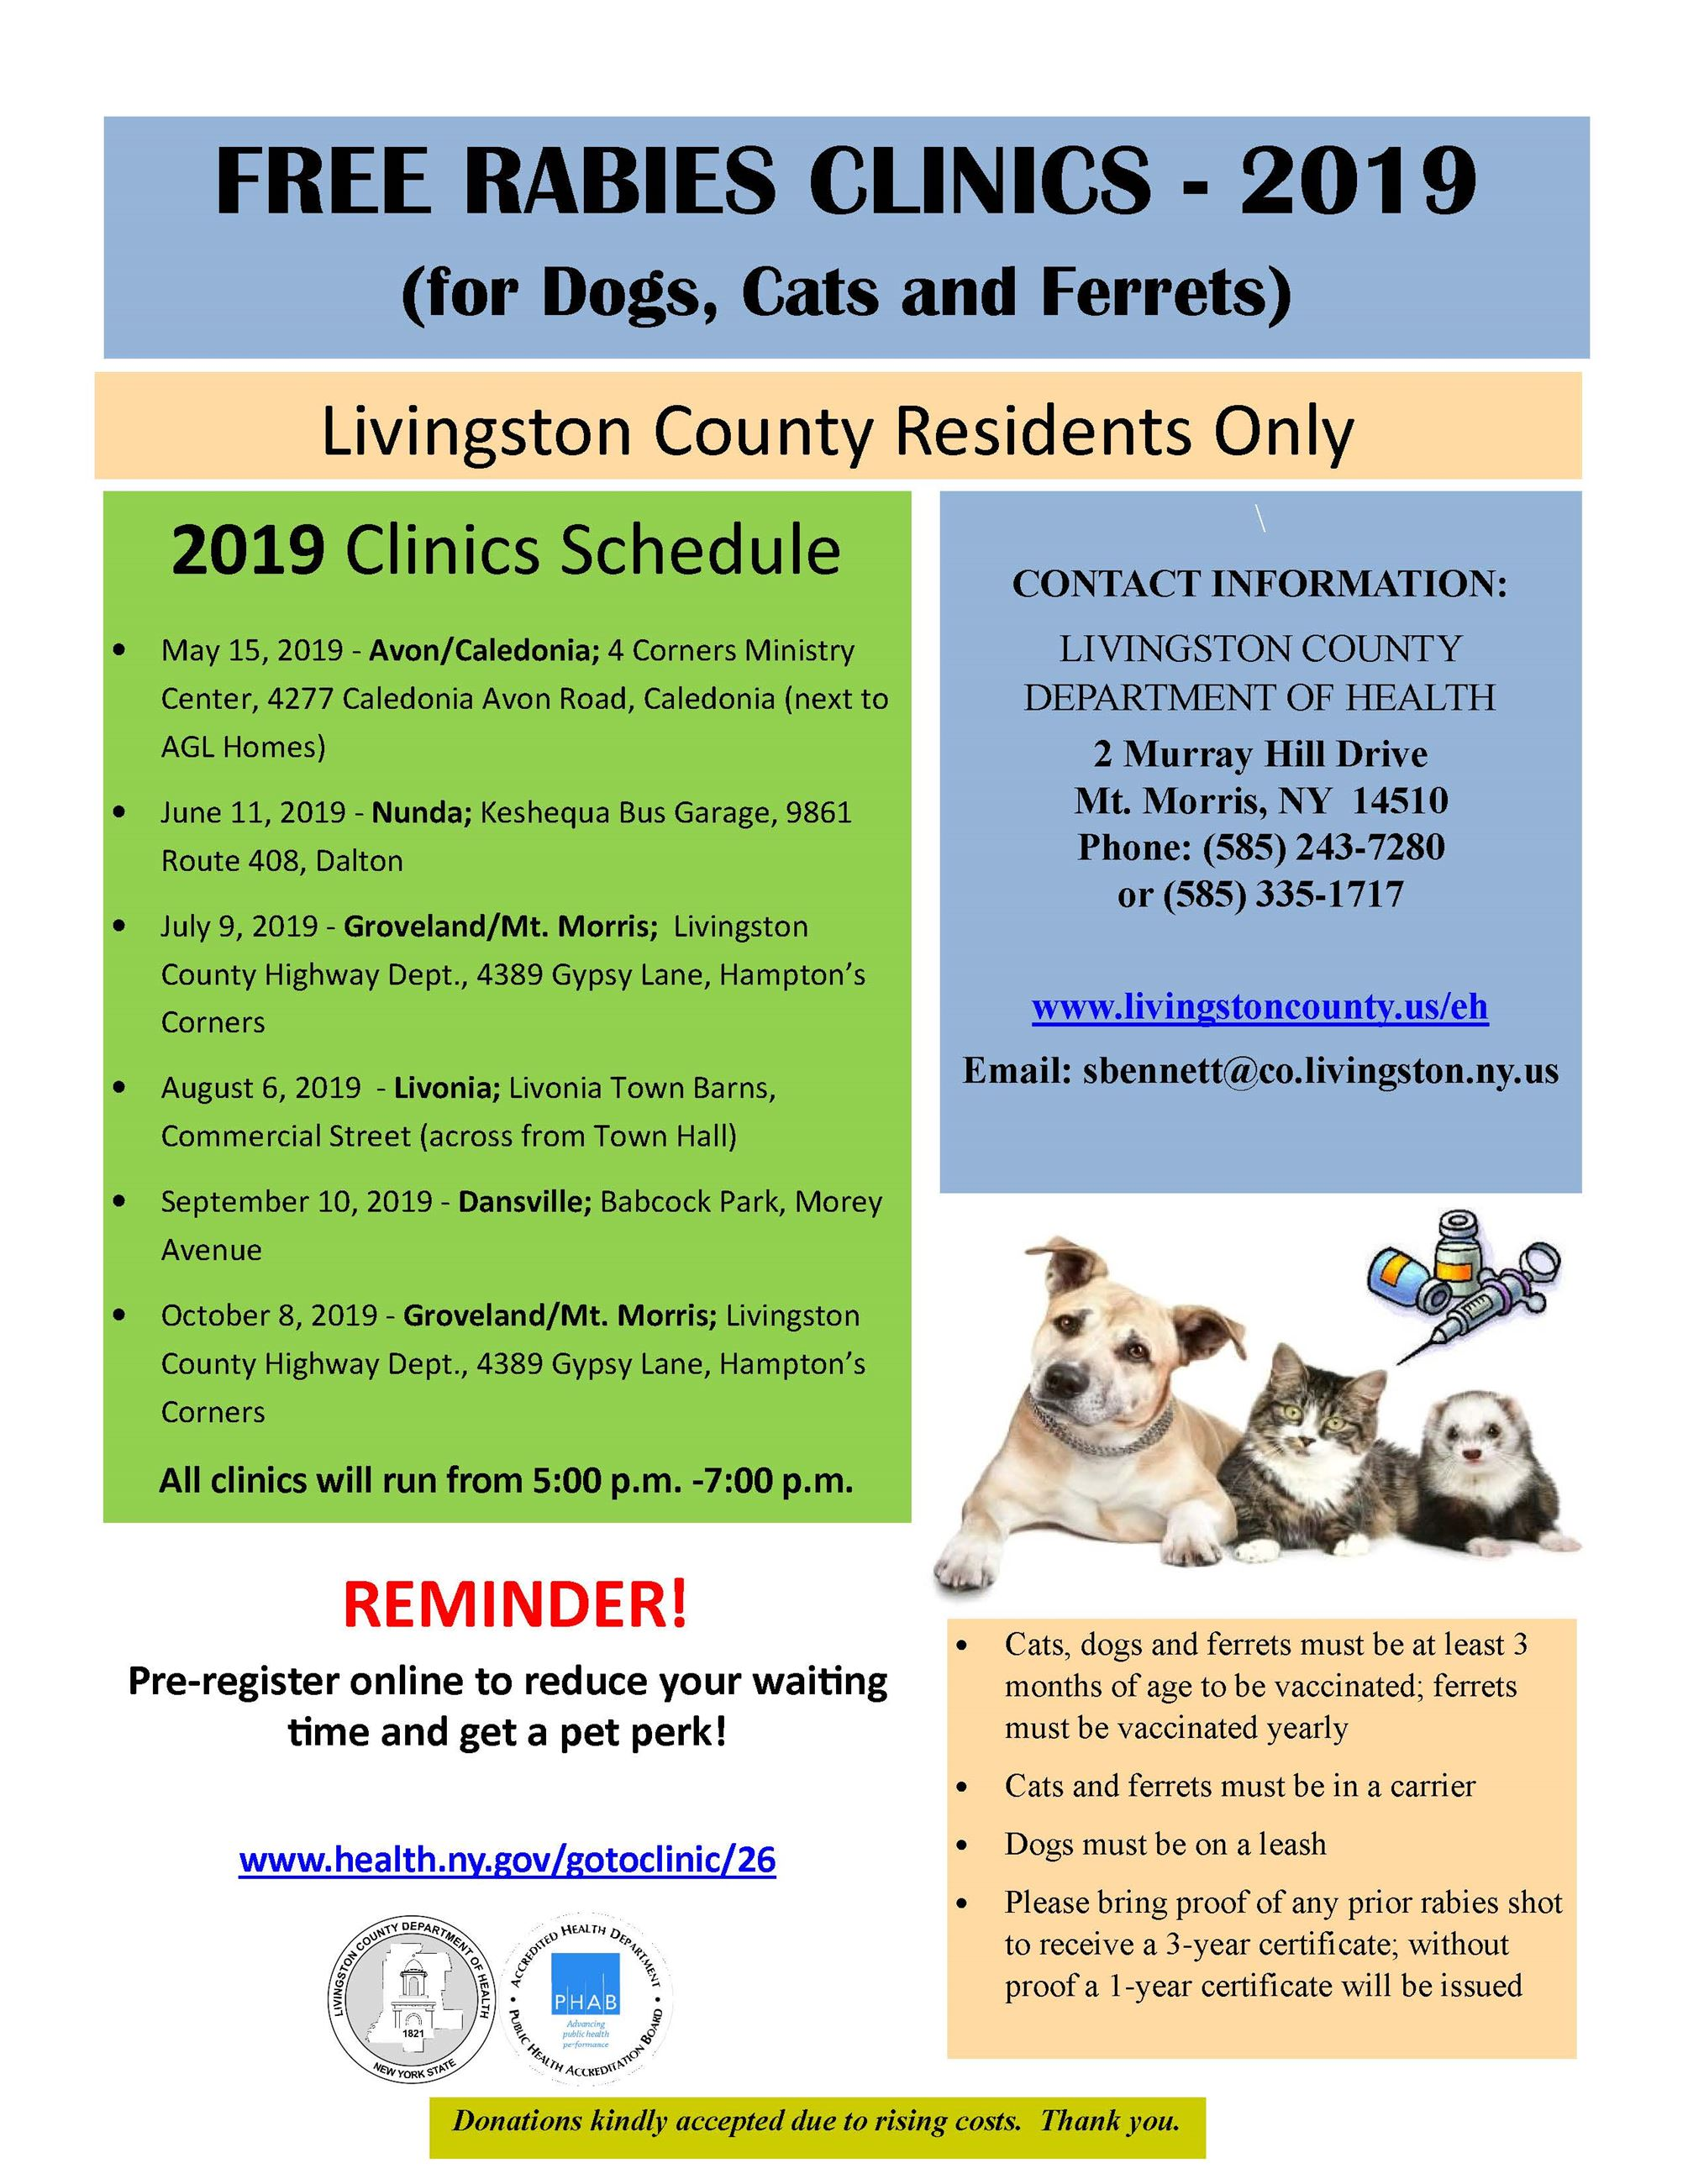 The rabies clinic schedule for 2019